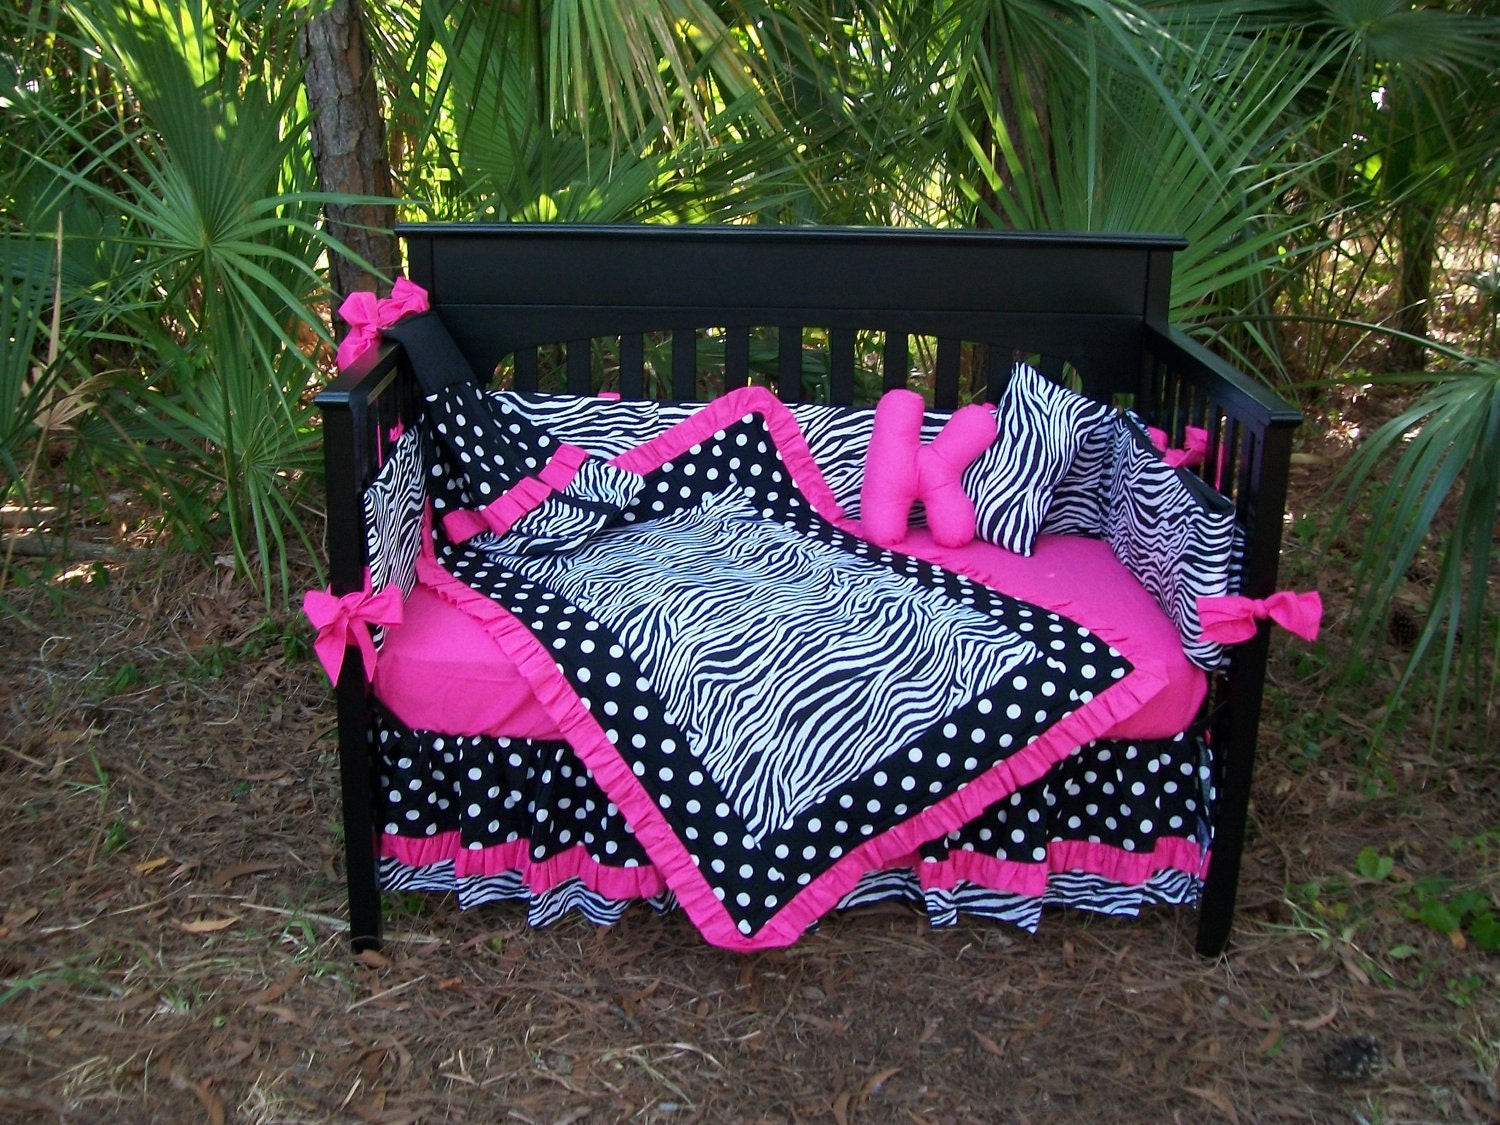 New Black White Polka Dot Zebra And Hot Pink Fabrics